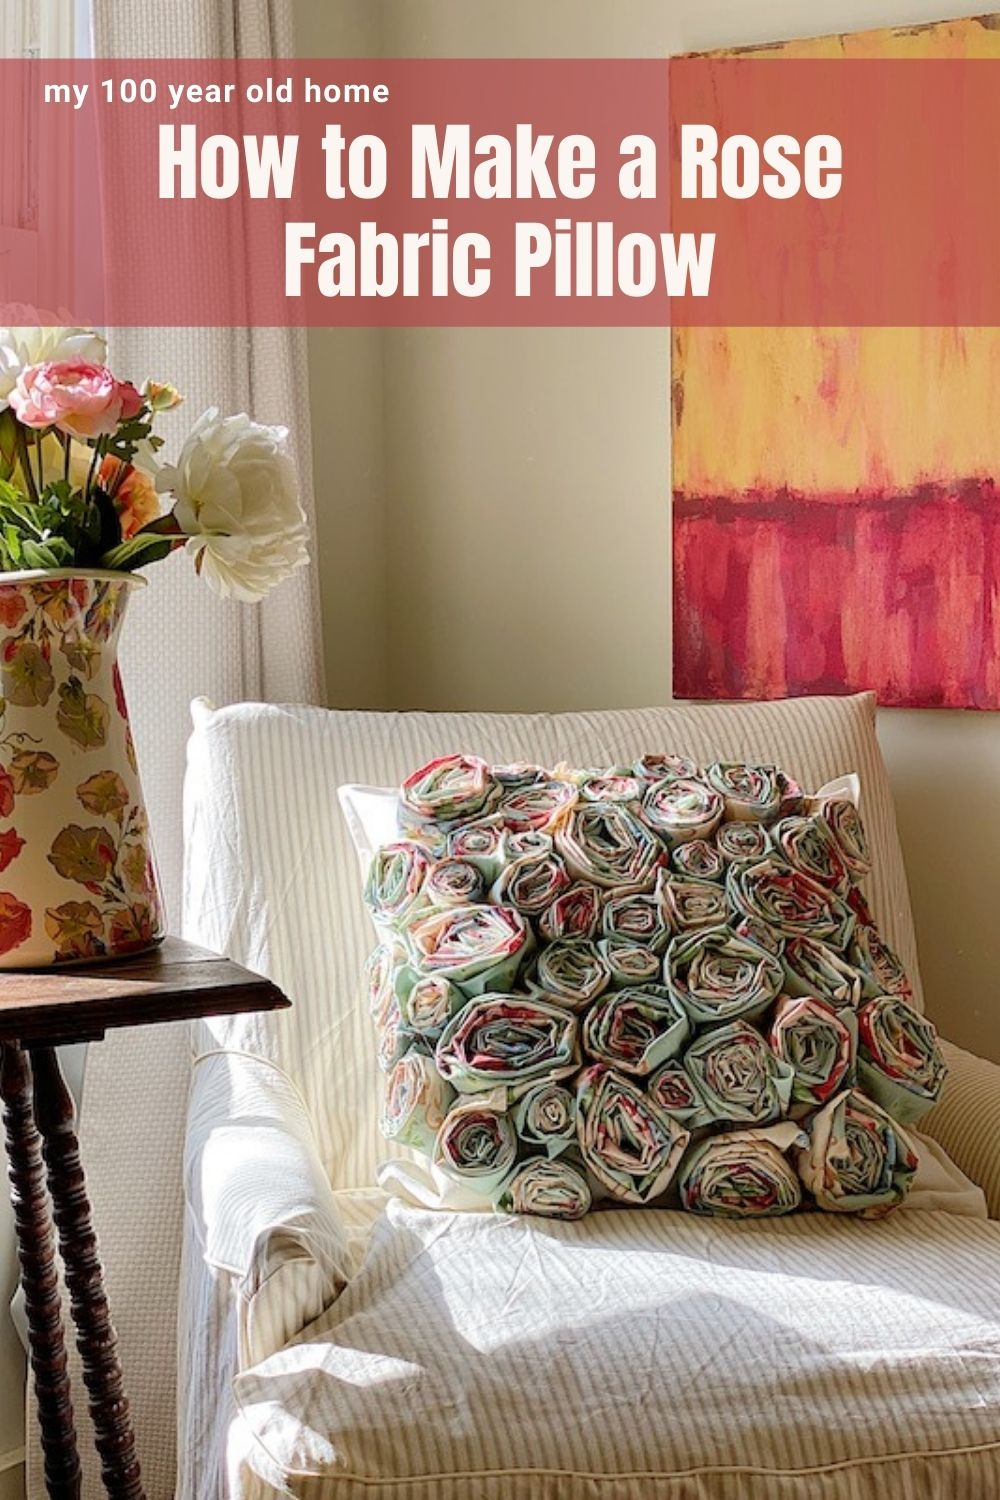 I am so excited how to share my latest flower craft. This is a no sew, torn fabric, easy flower craft pillow.